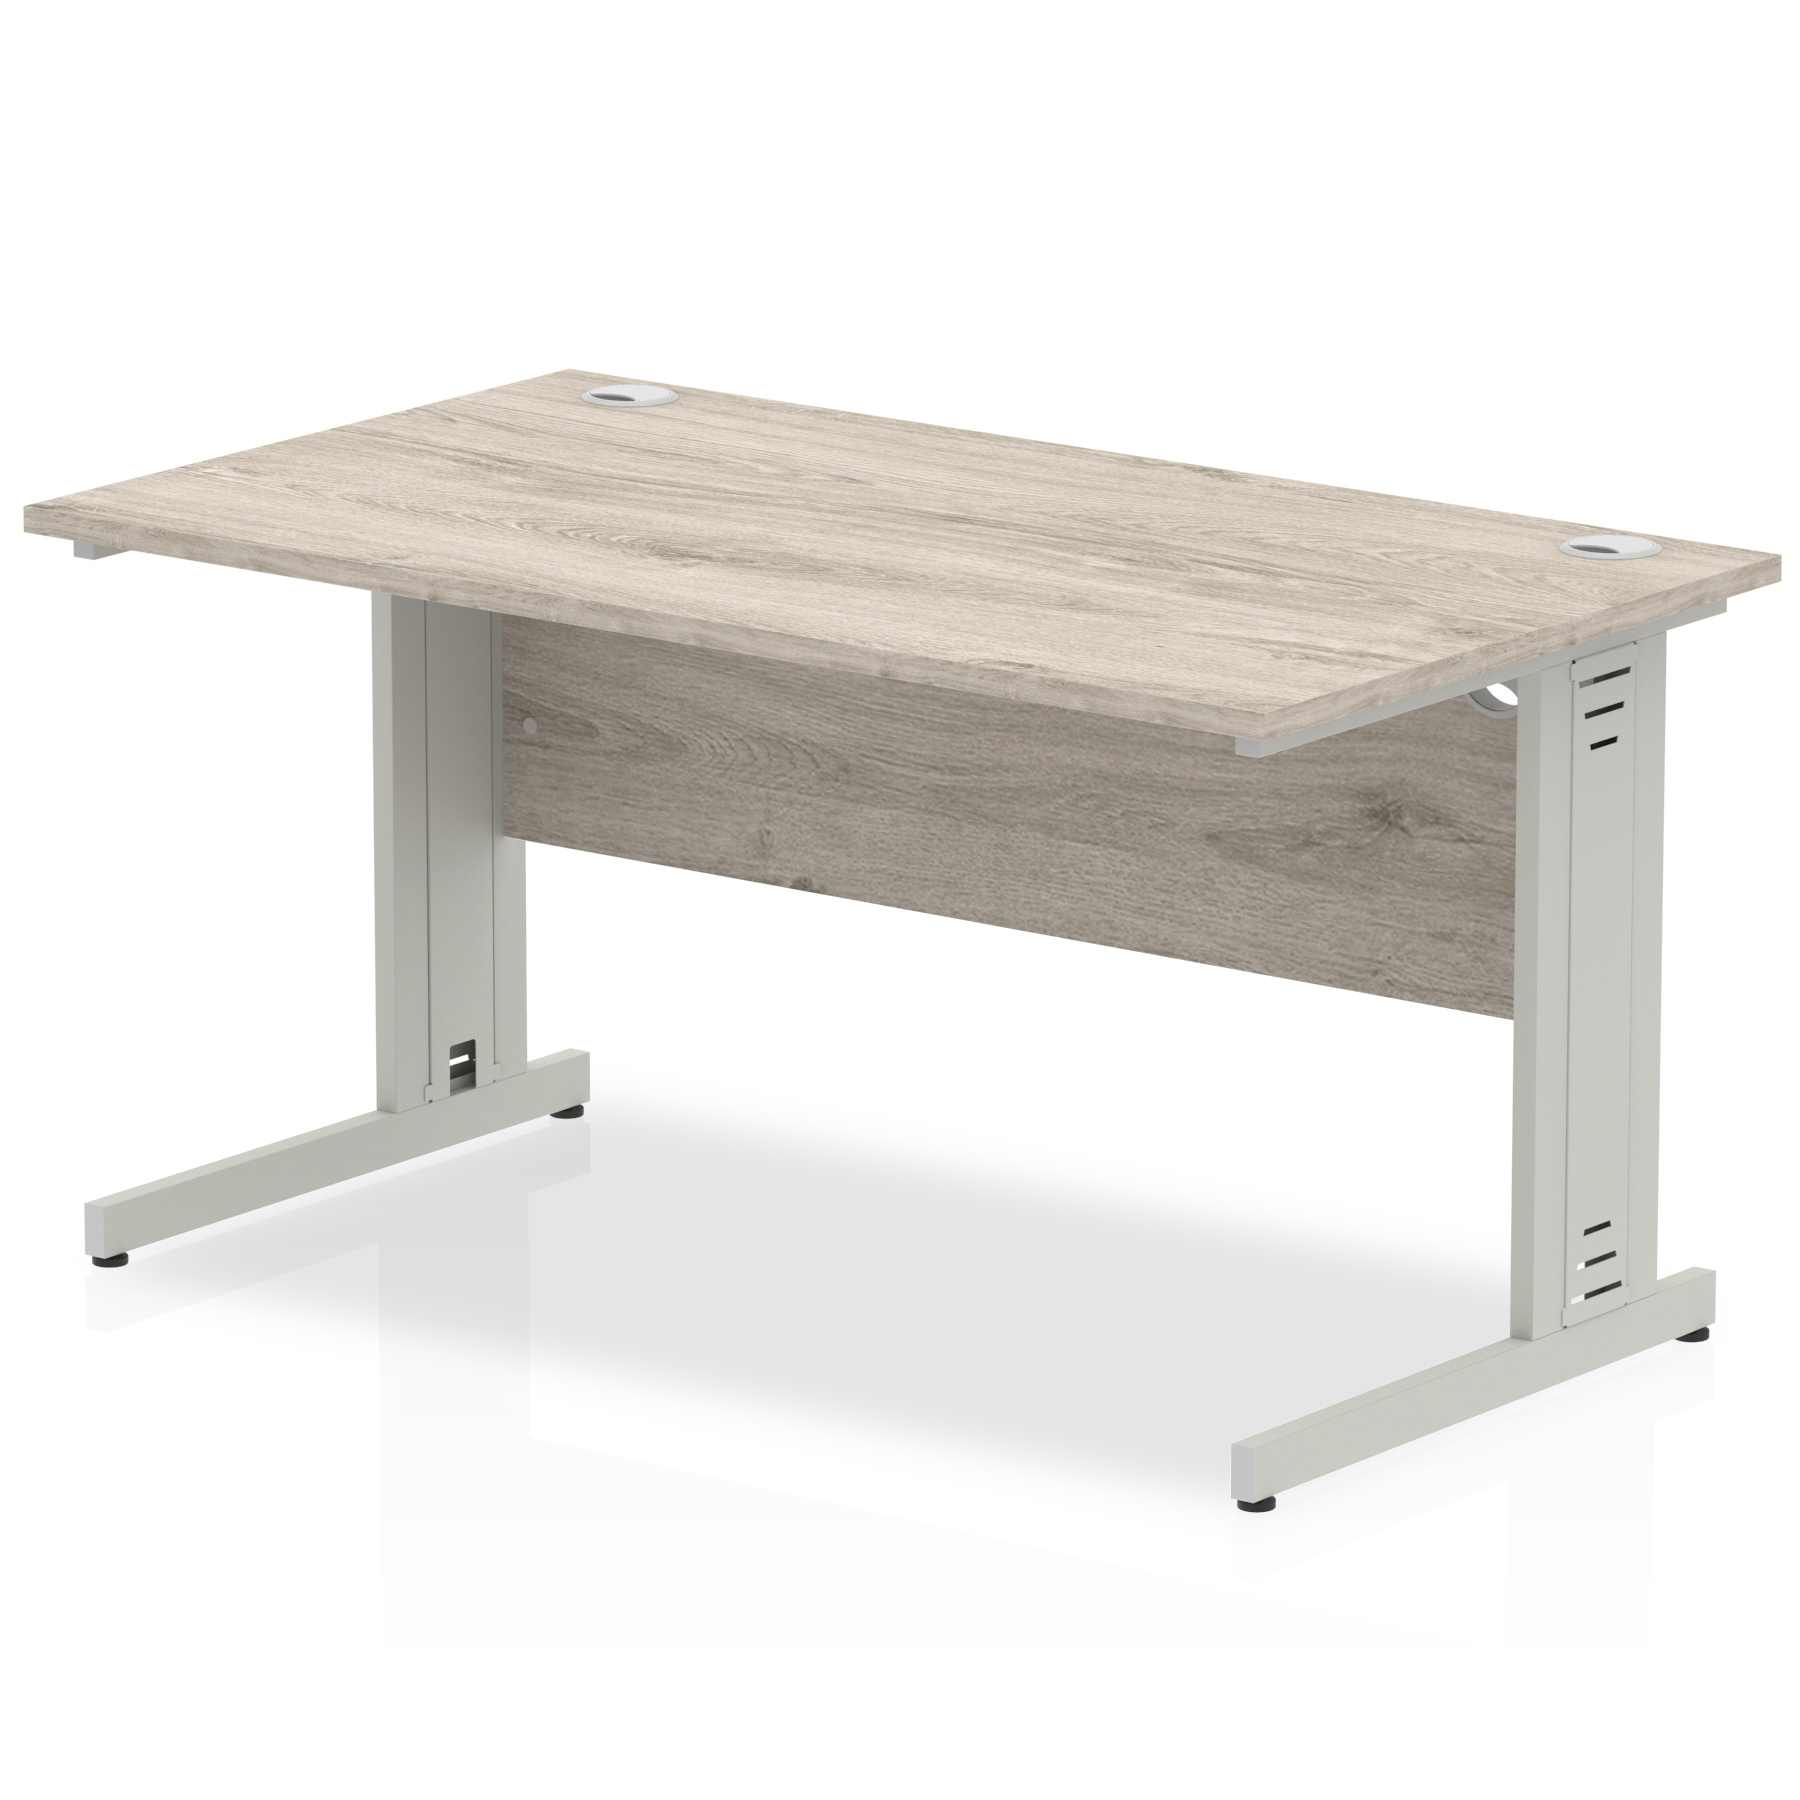 Desks Trexus Rectangular Desk Silver Cable Managed Leg 1400x800mm Grey Oak Ref I003102